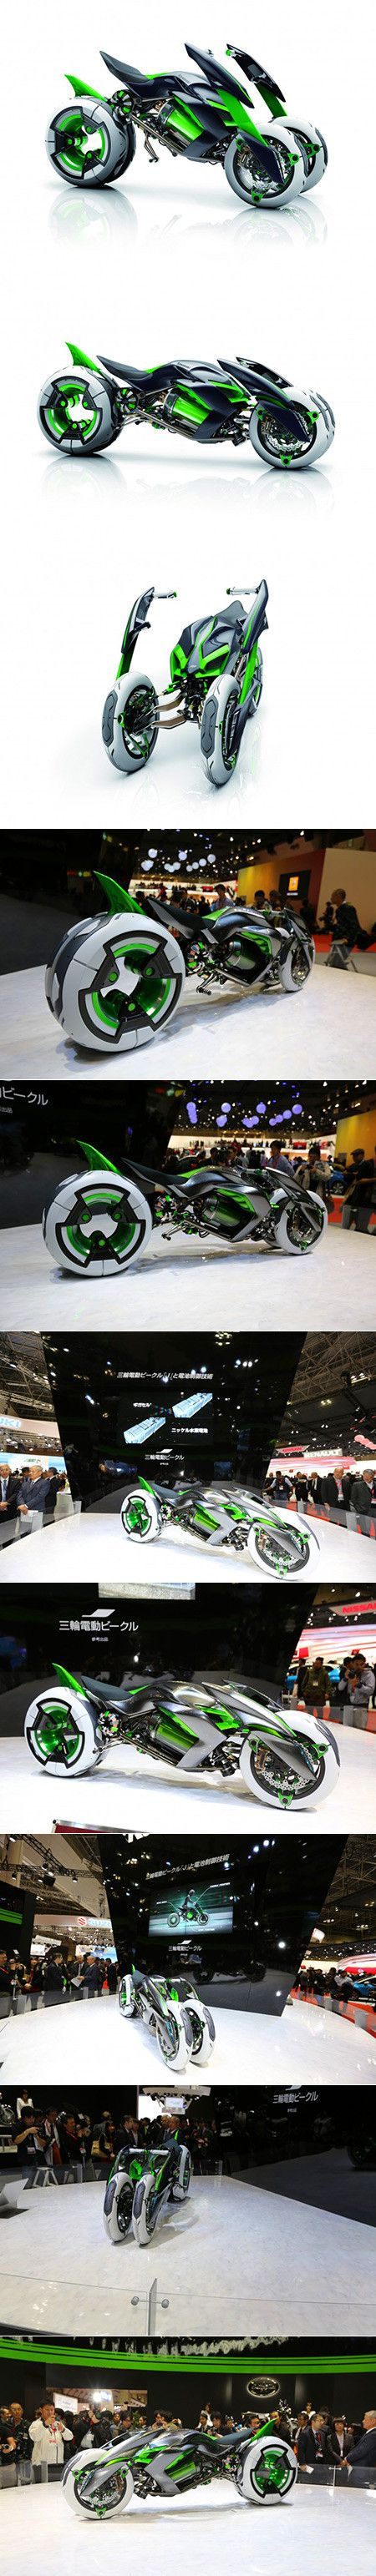 Kawasaki J is a Real-Life TRON Light Cycle, Features Shape Shifting 3-Wheel Design - TechEBlog